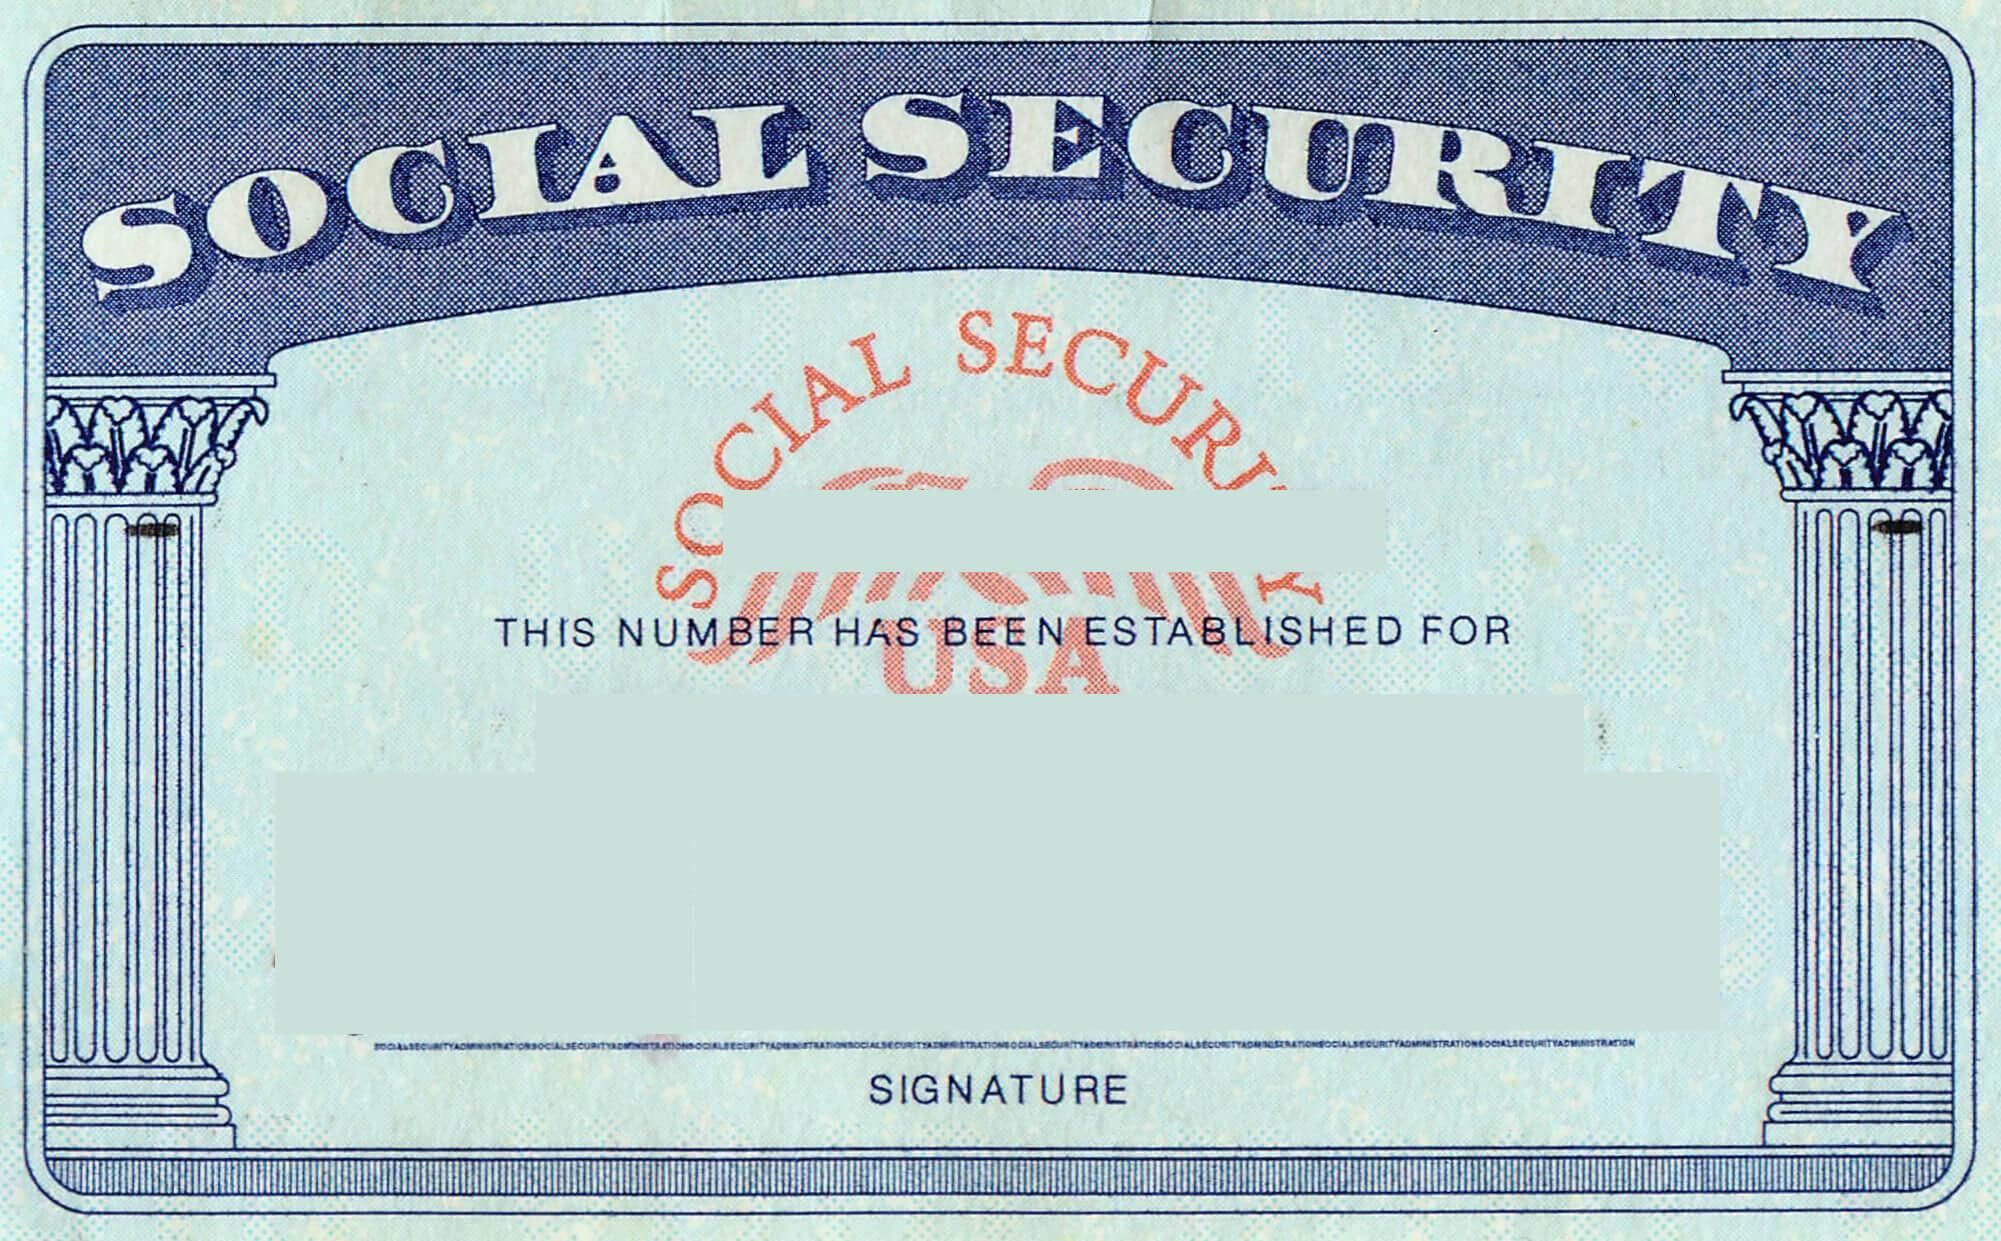 Blank Social Security Card Template | Social Security Card Throughout Social Security Card Template Free